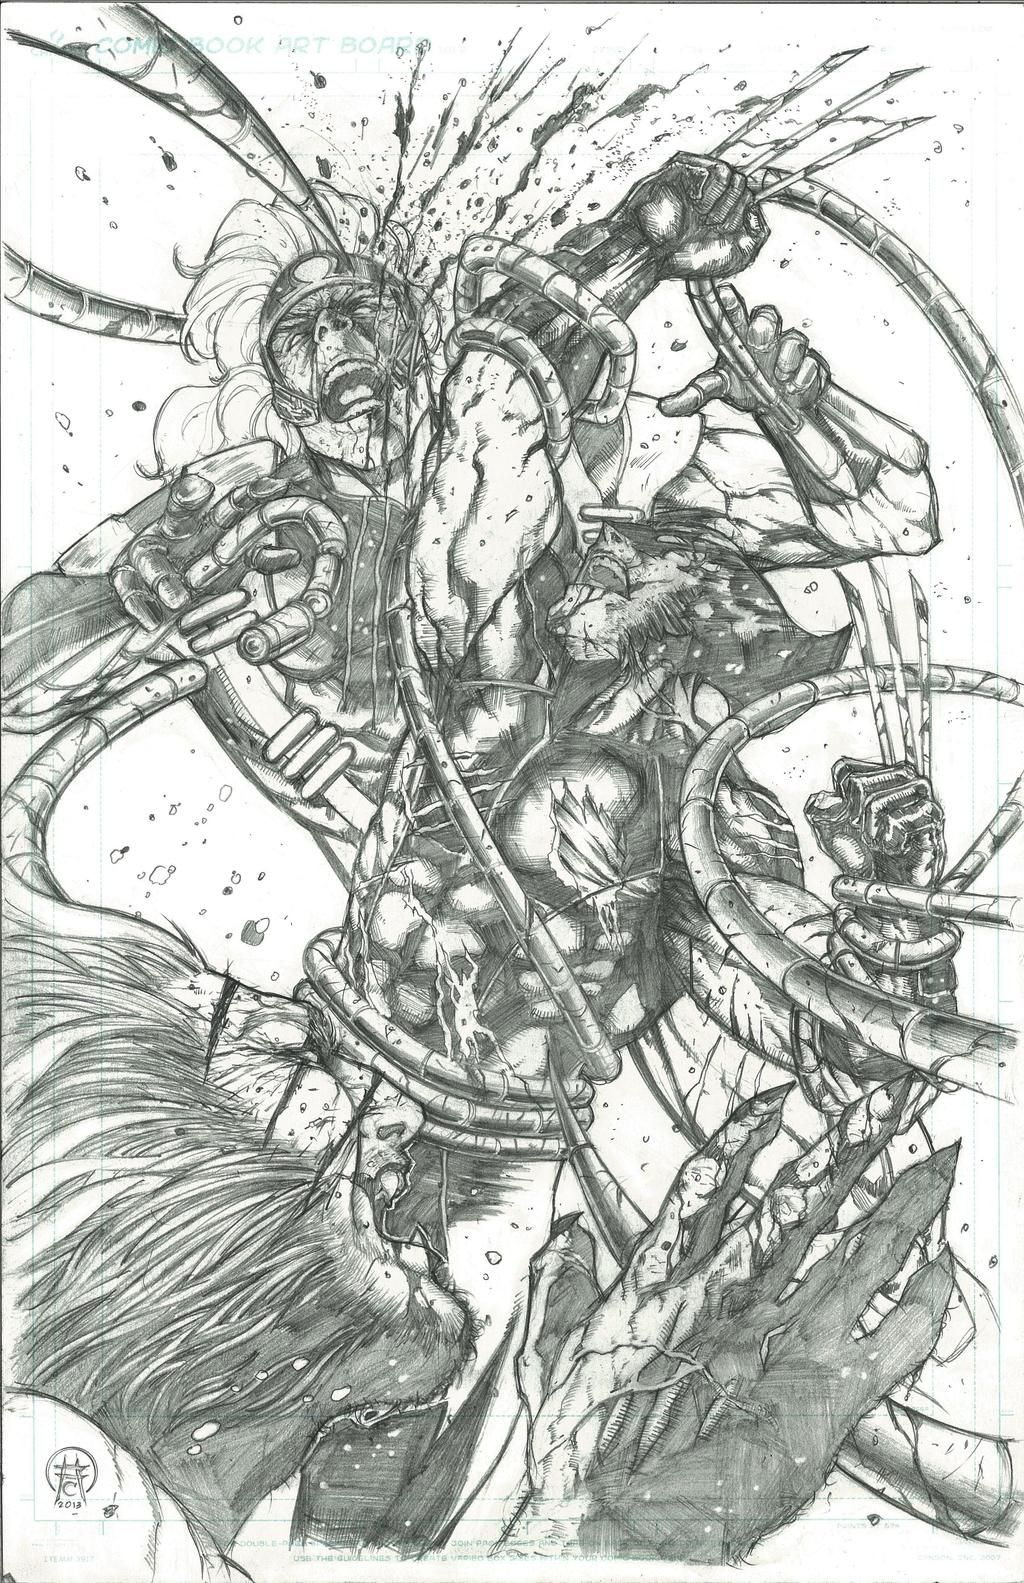 Savages By Ace Continuado On Deviantart Savage Wolverine Ace